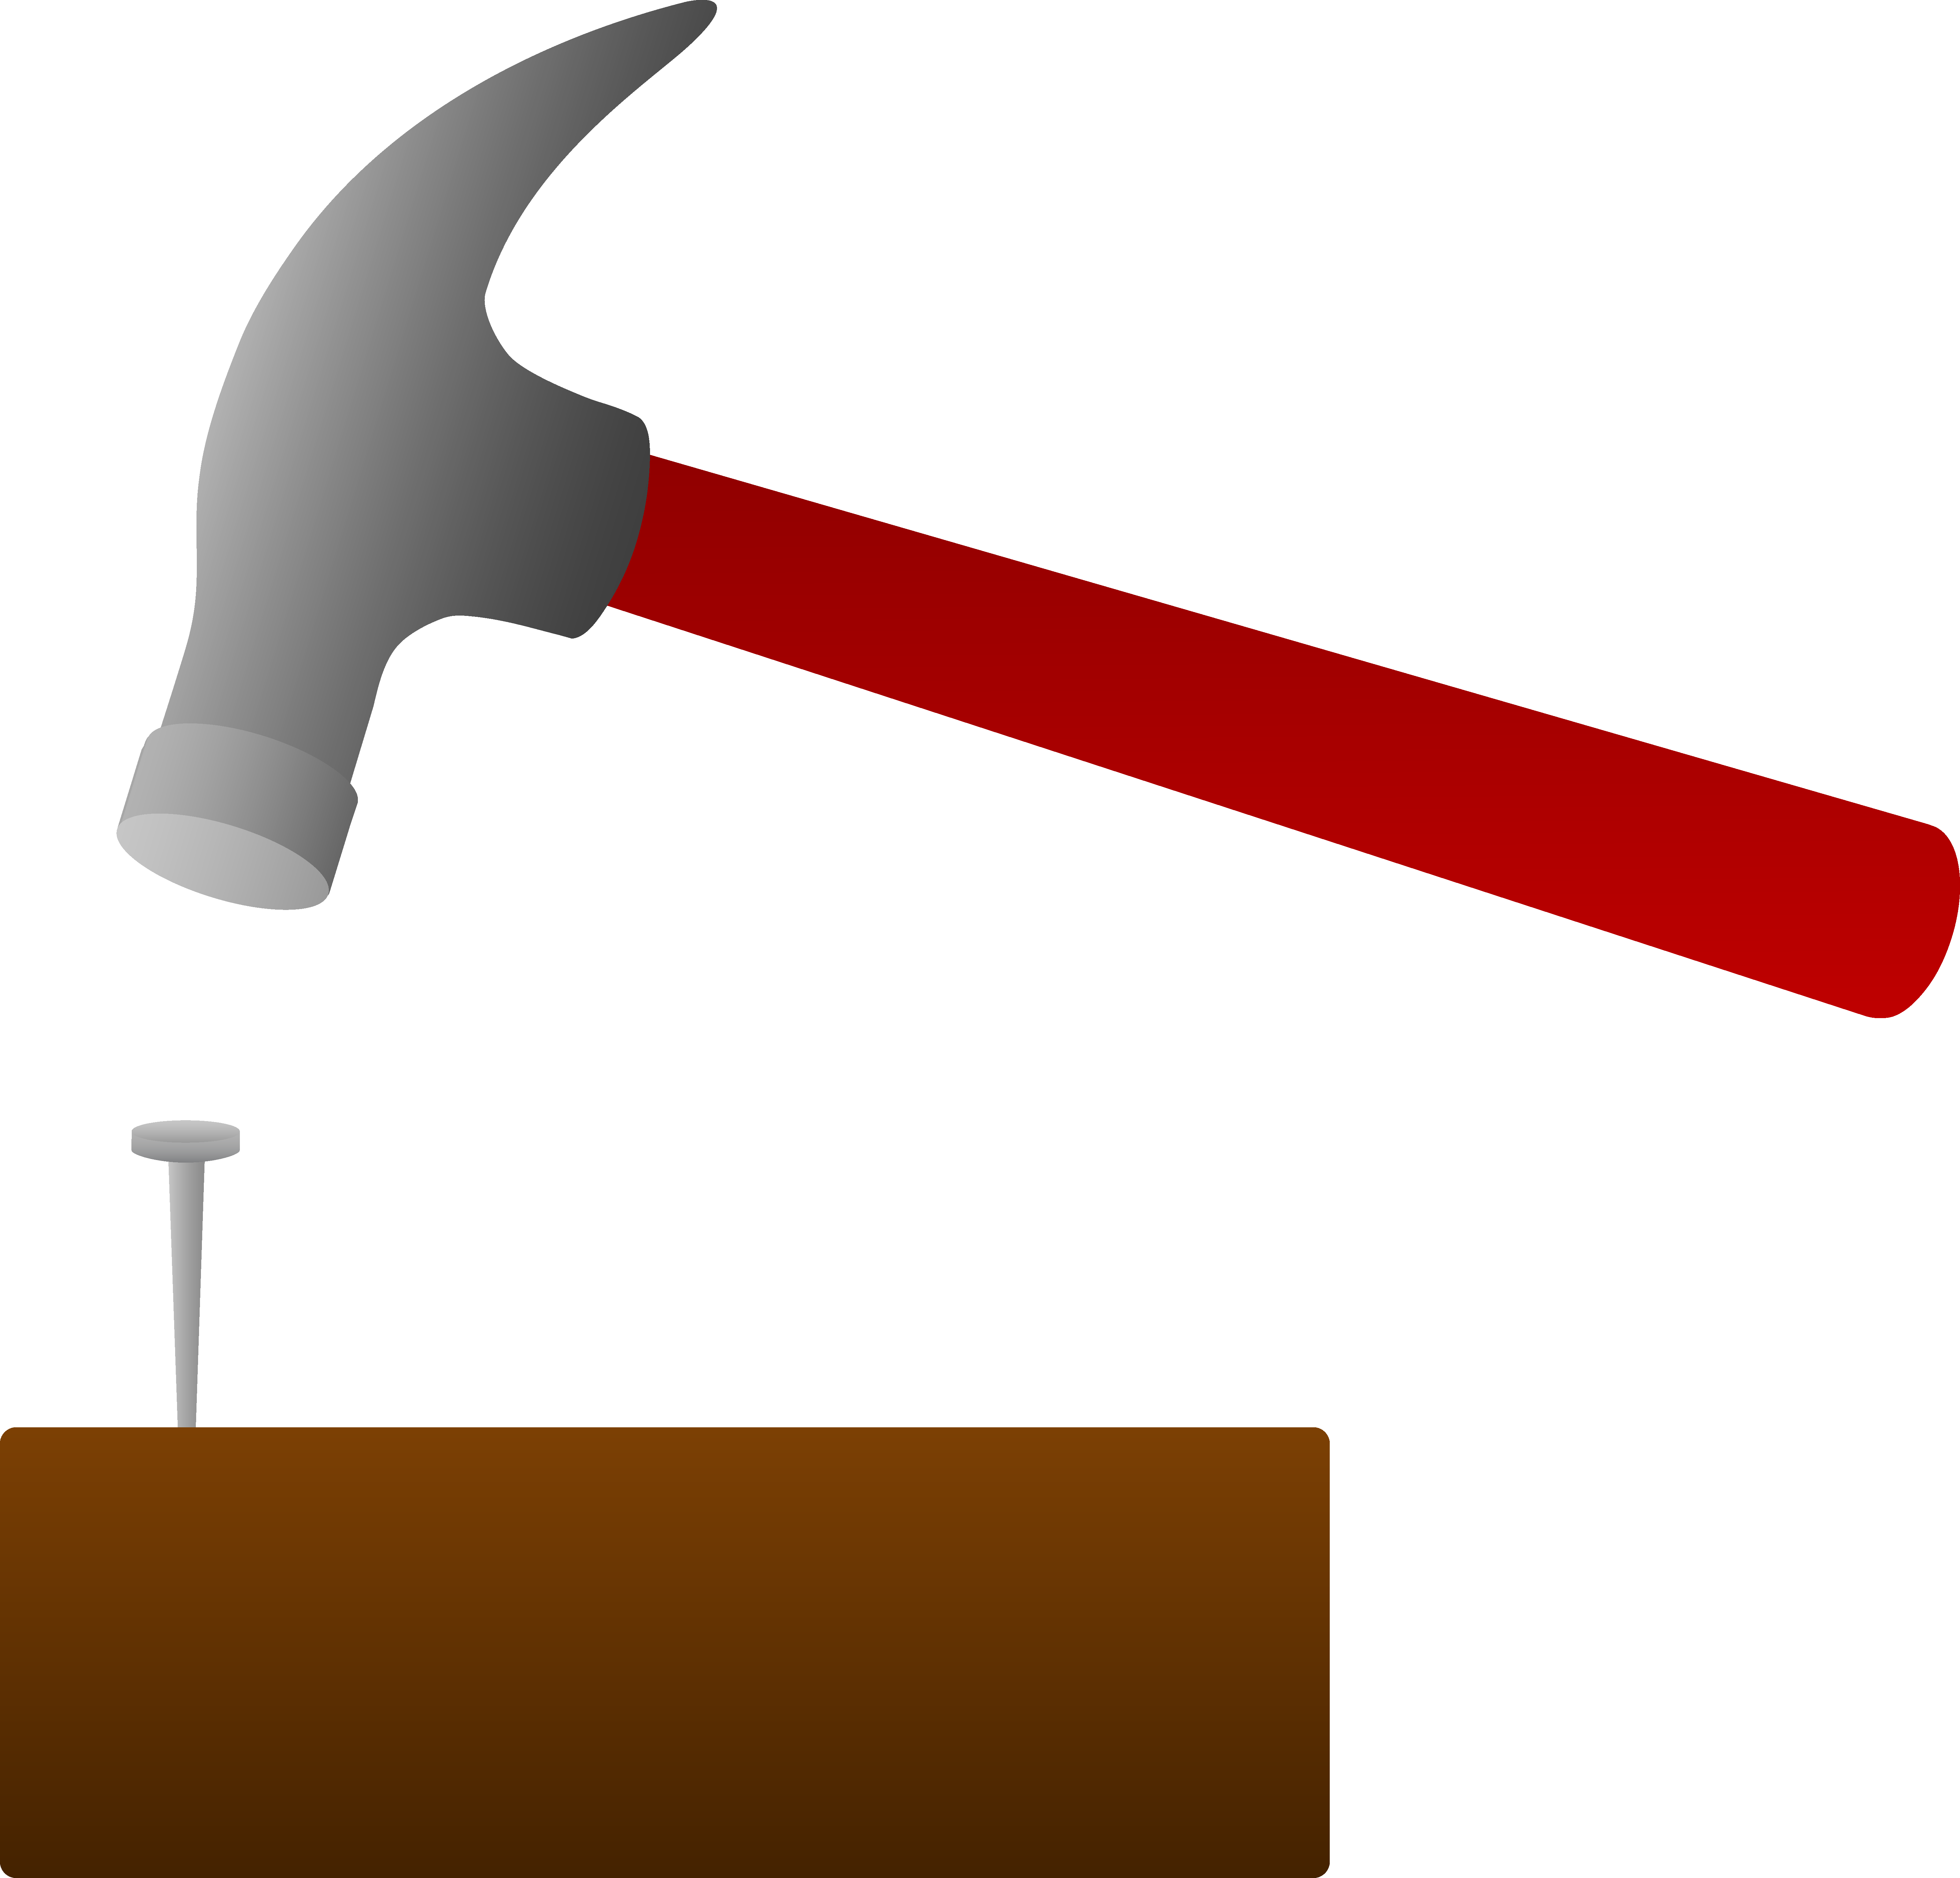 Nails clipart animated Animated — Hammer Hammer Clipart